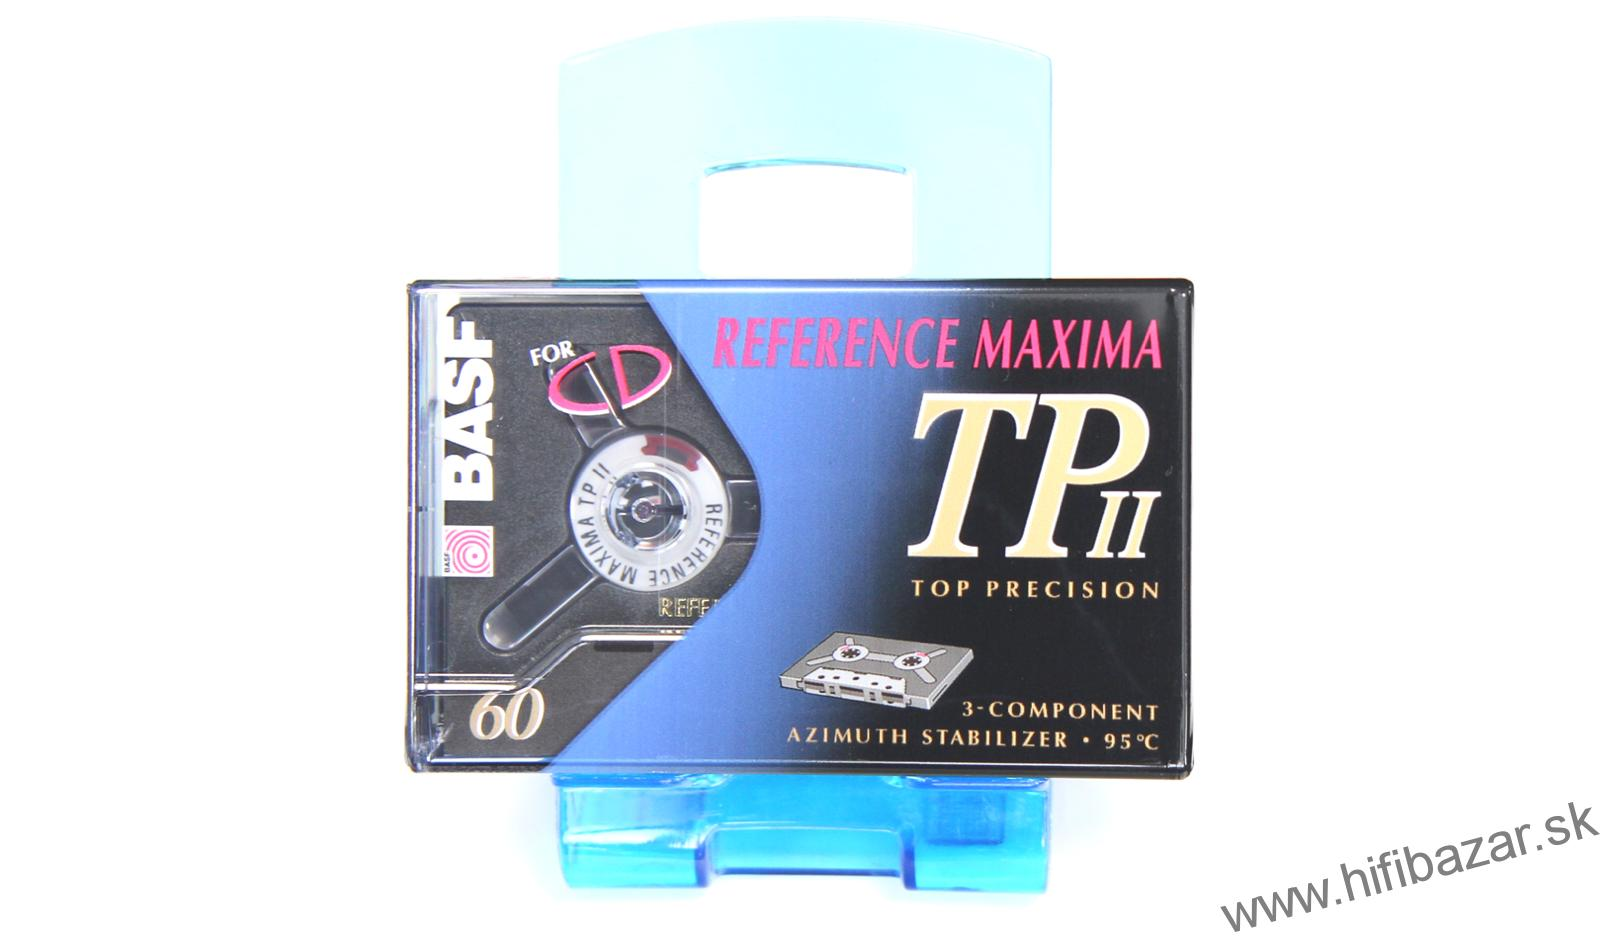 BASF TPII-60 Reference Maxima